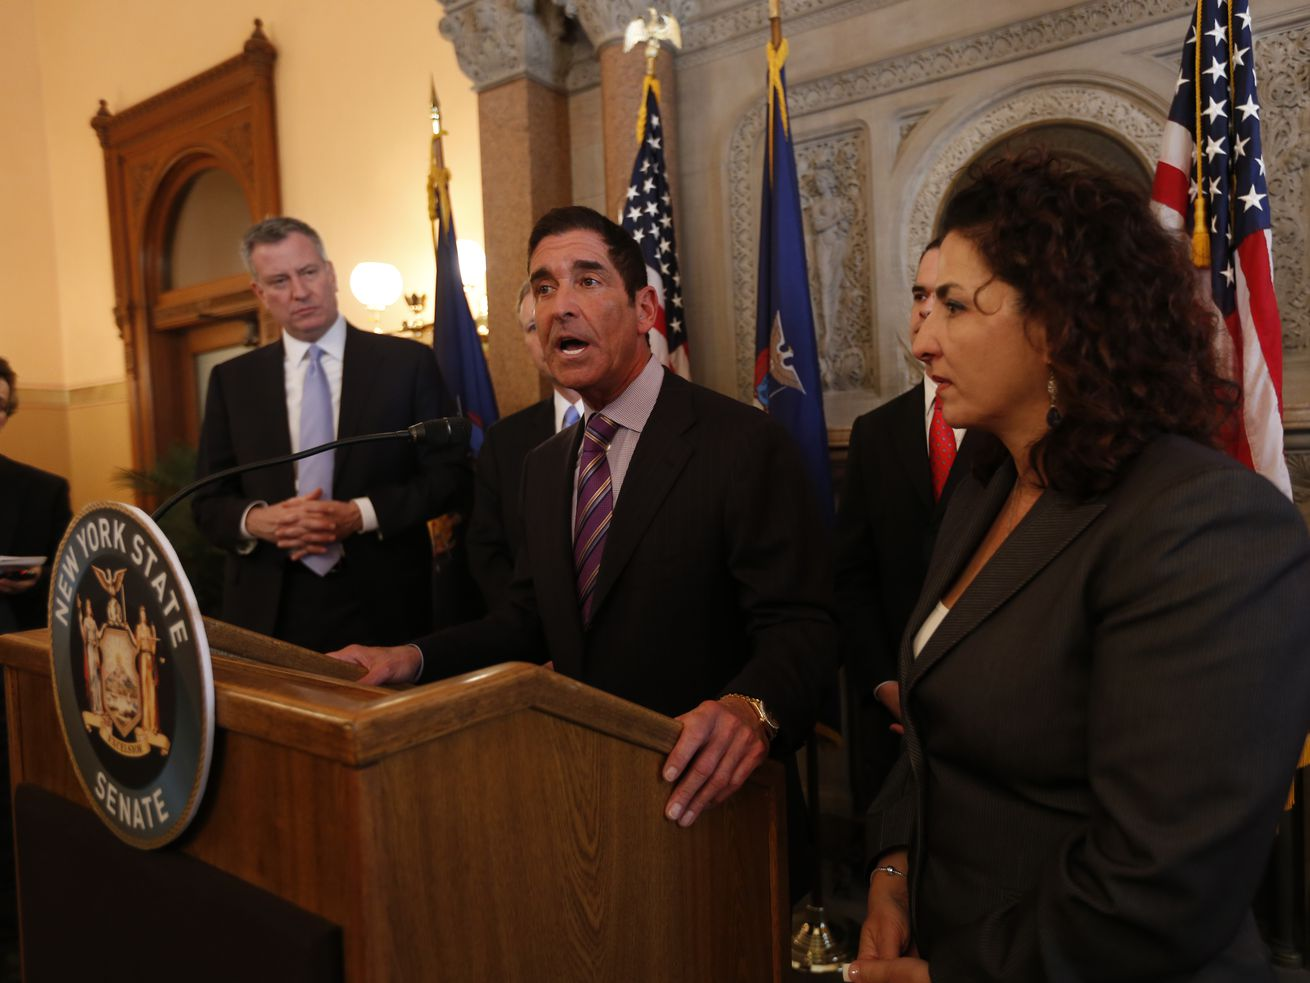 Sen. Jeff Klein, leader of the now-disbanded Independent Democratic Conference.